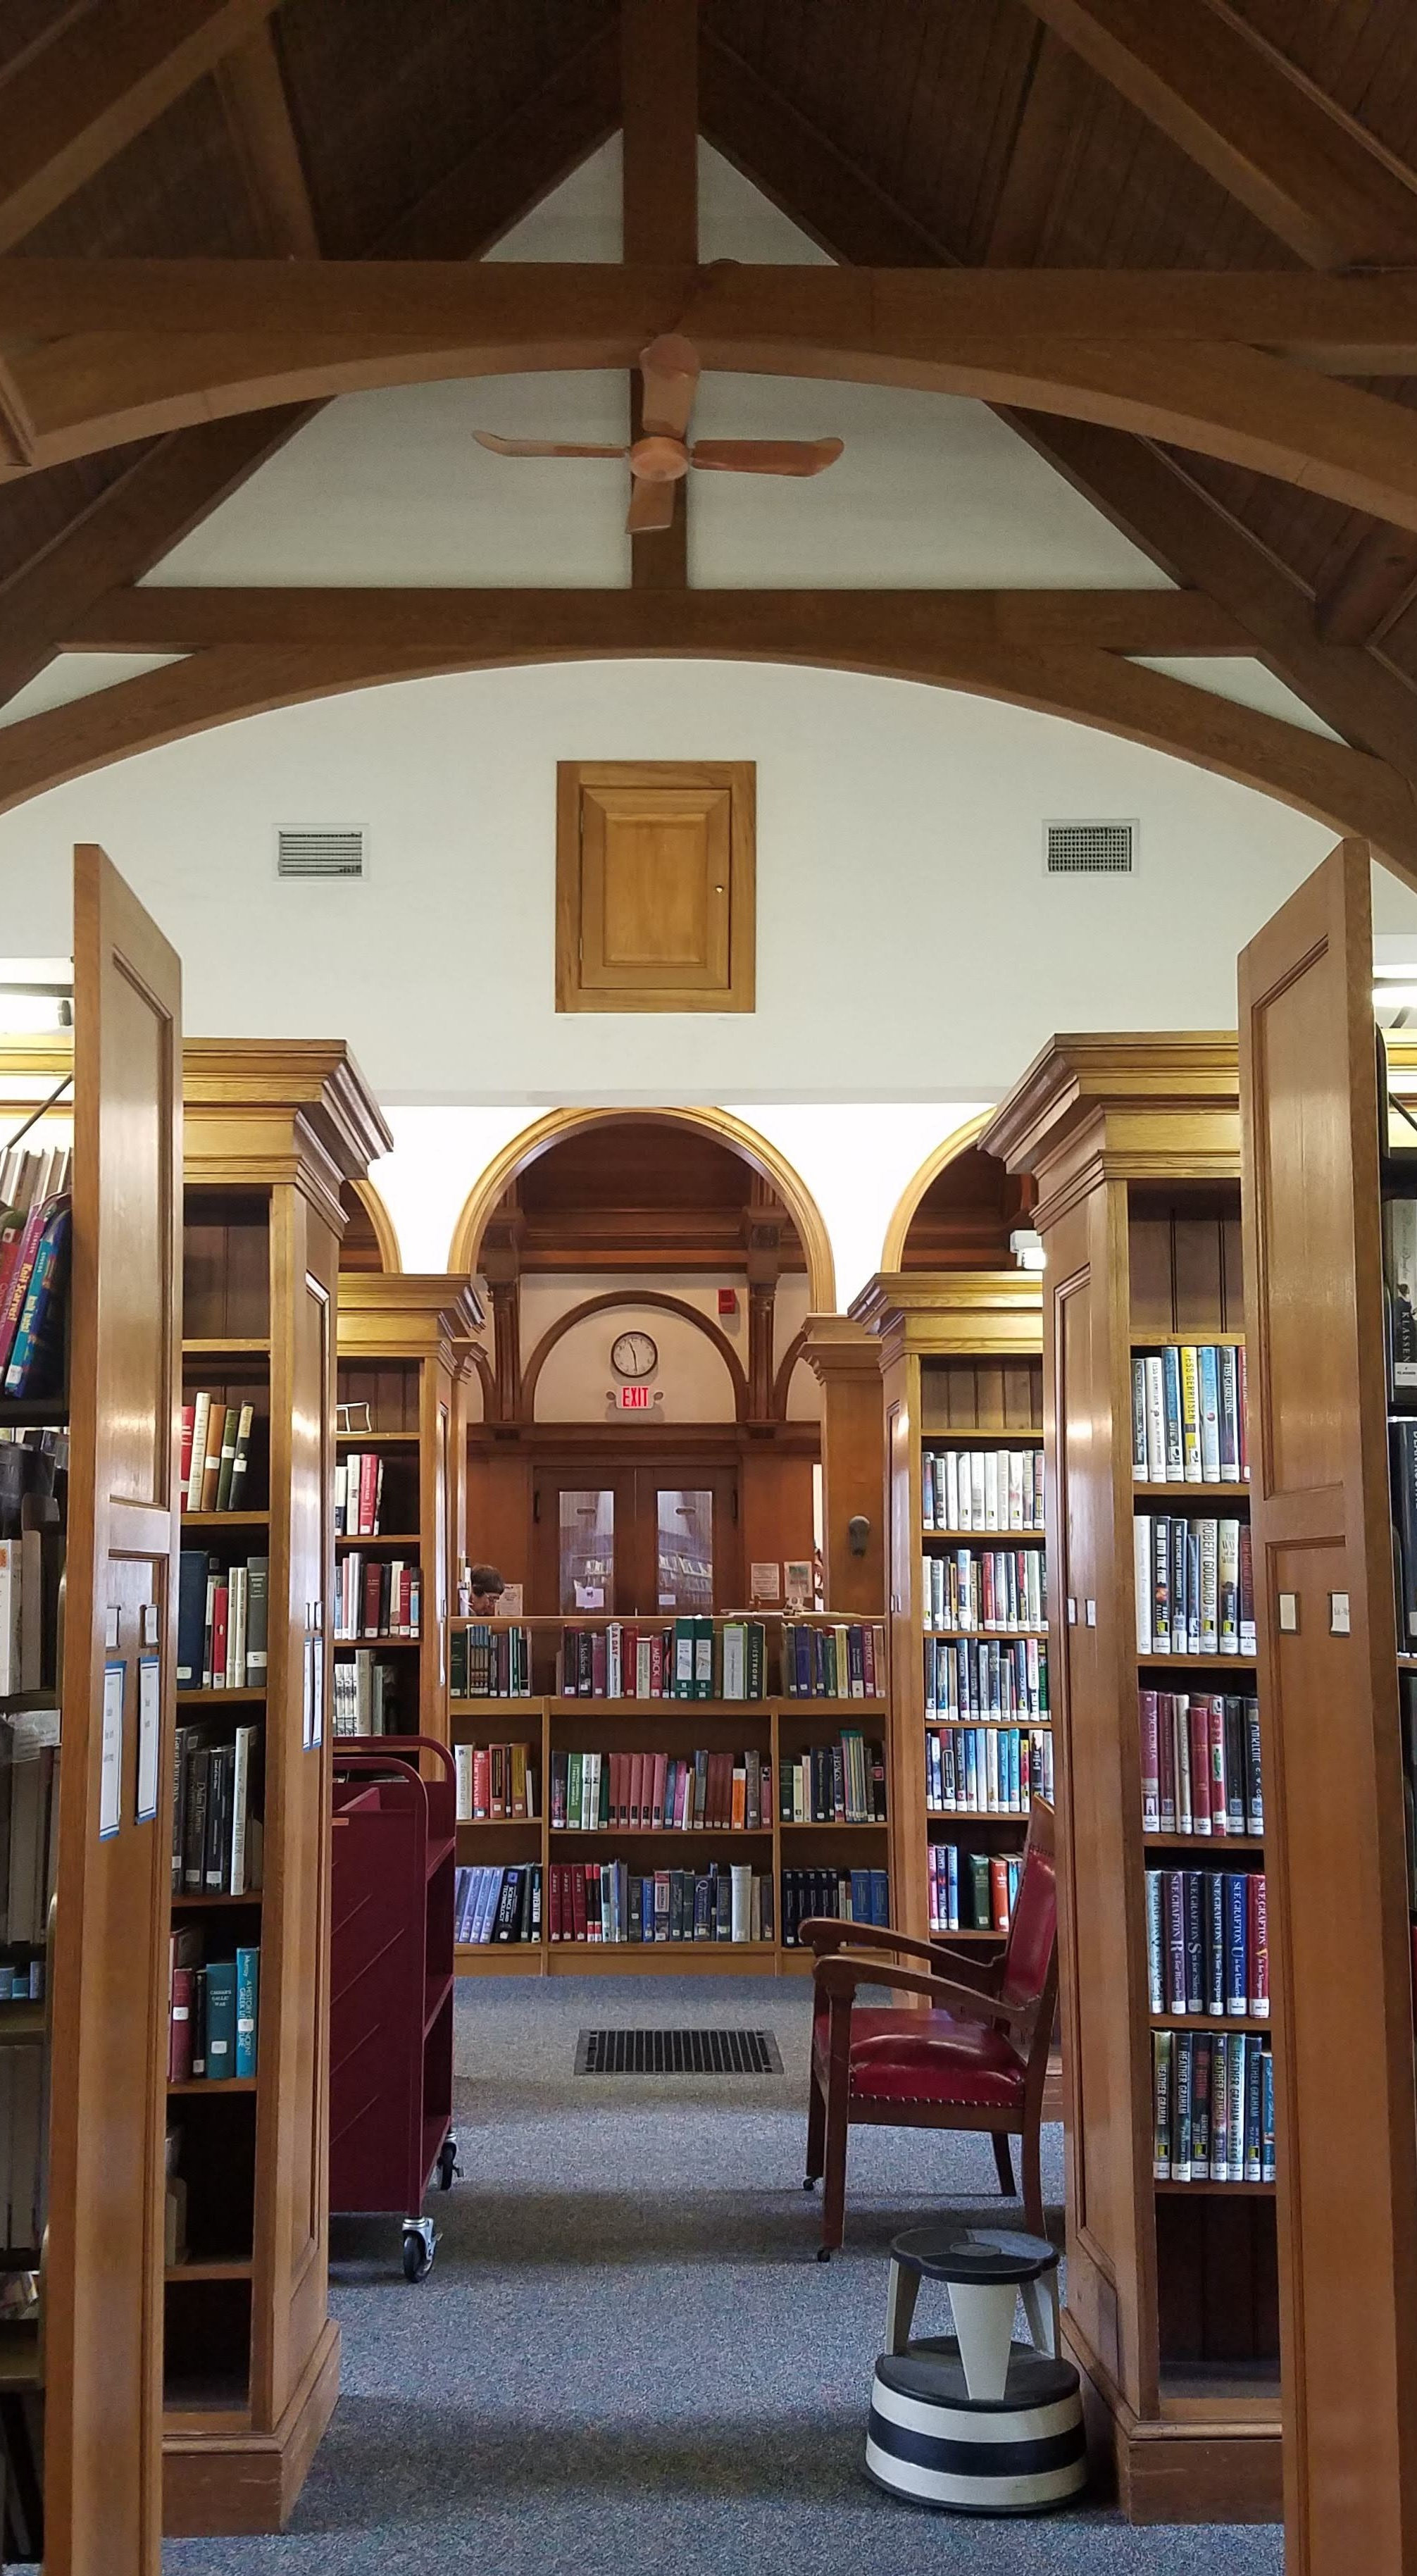 The Bancroft Memorial Library